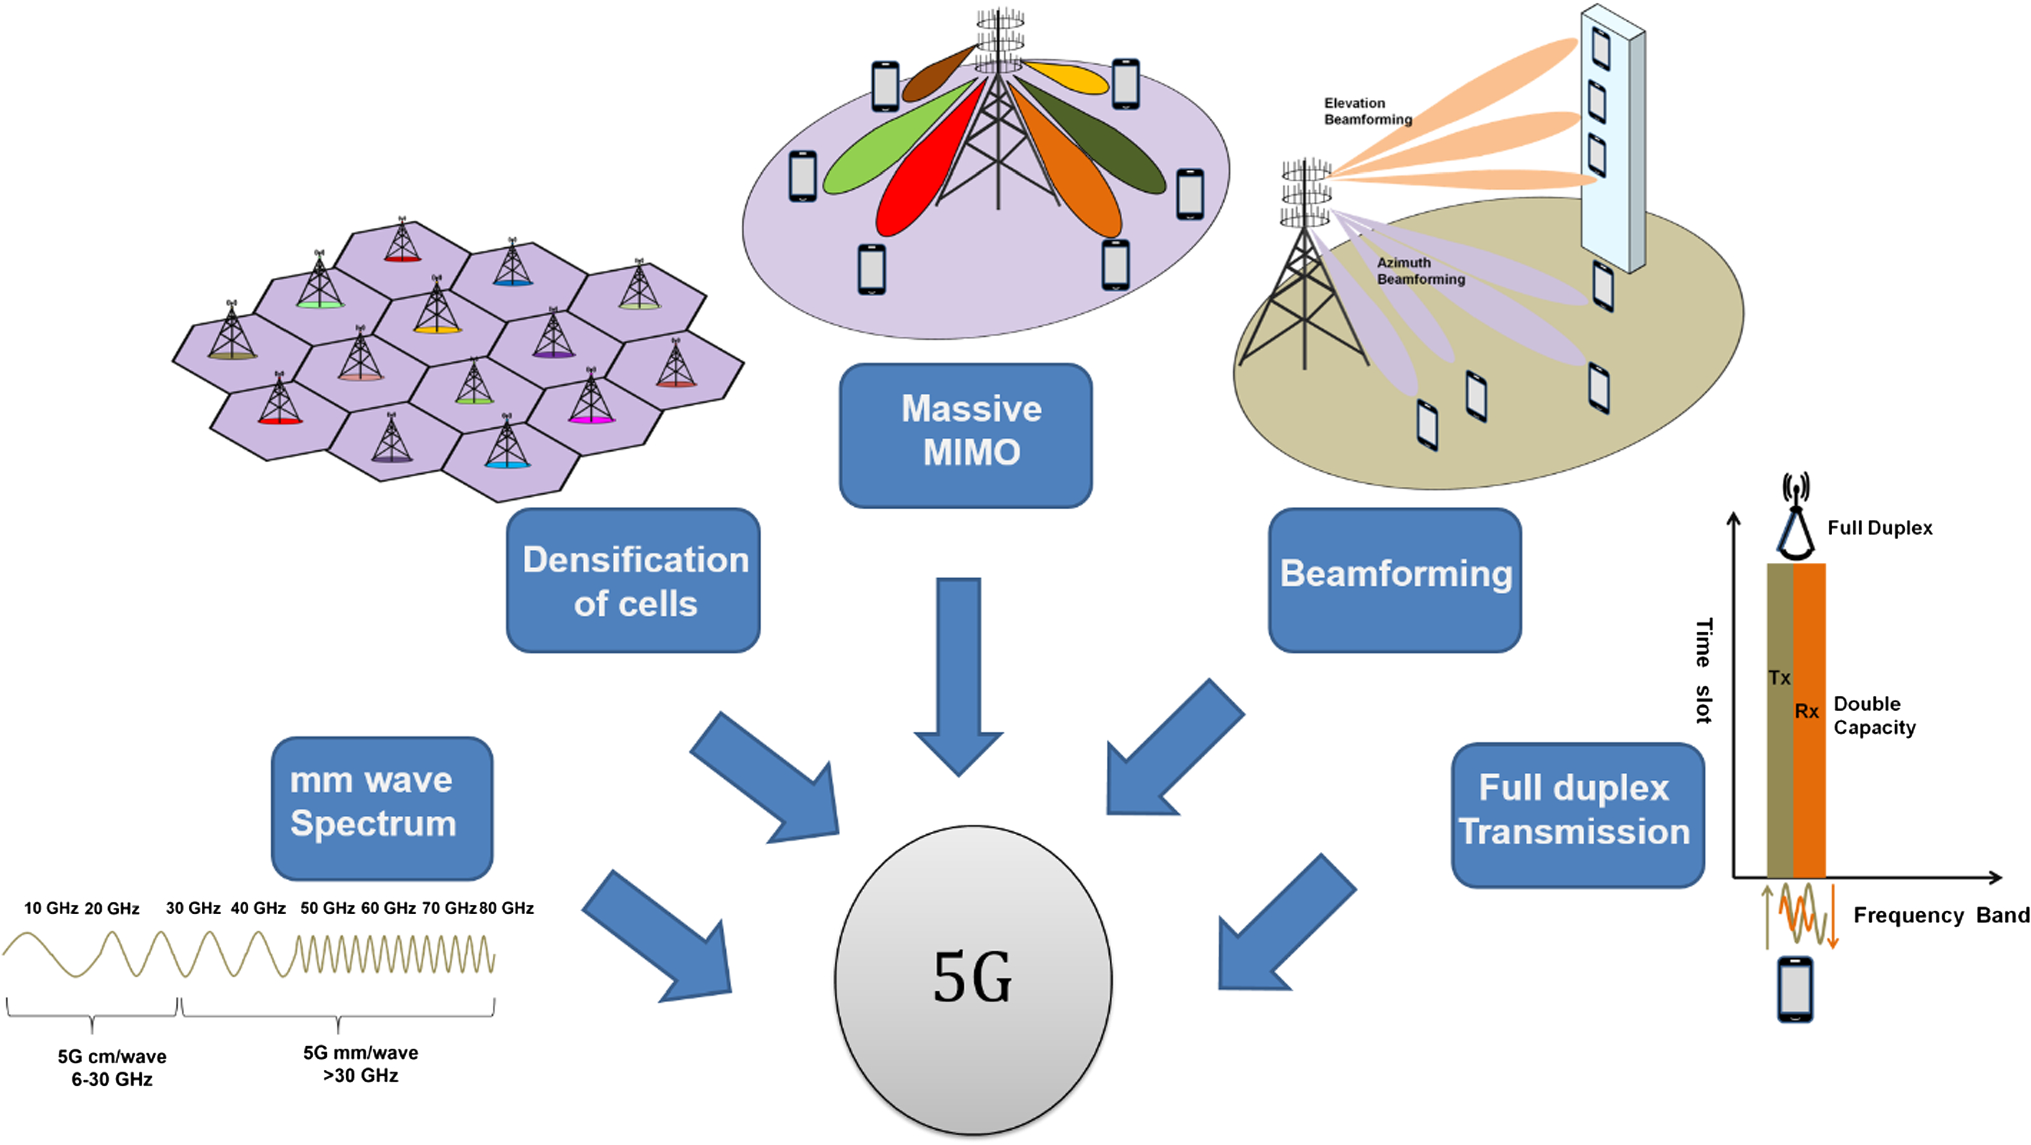 A survey on role of photonic technologies in 5G communication